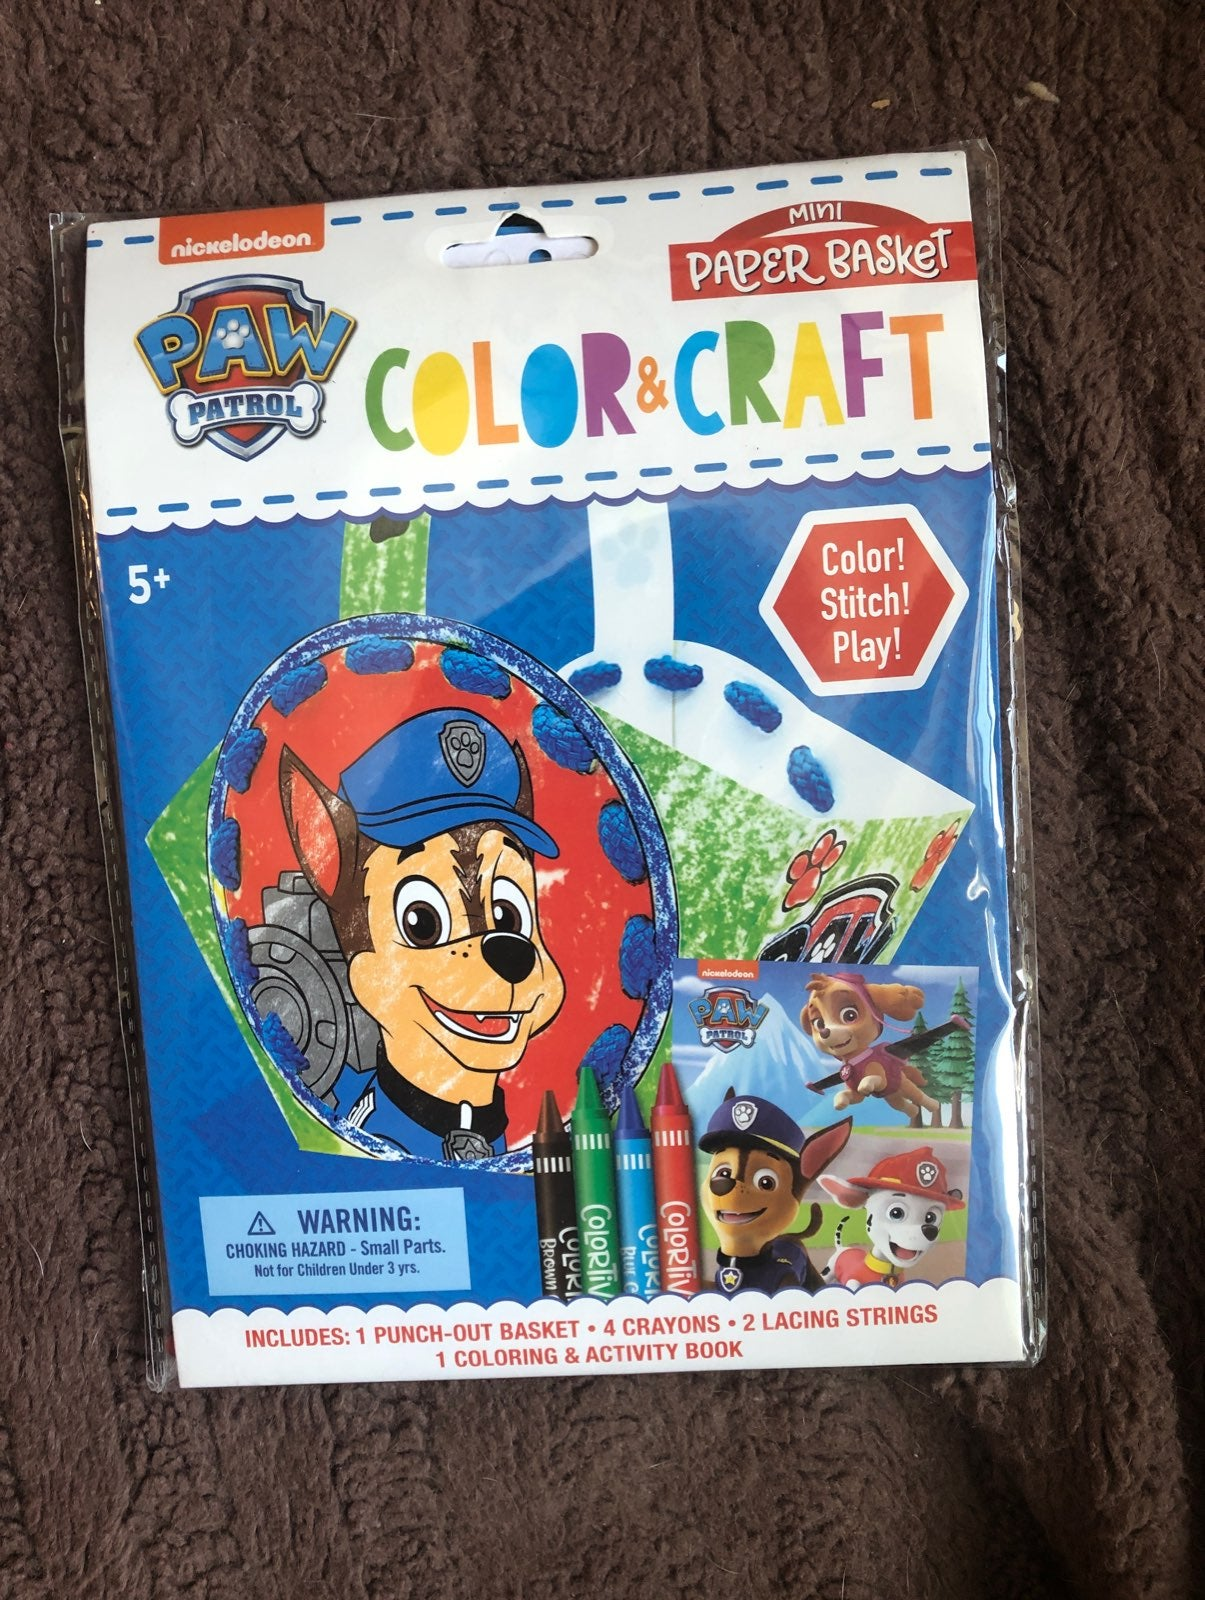 Paw patrol color and craft actuvity kit